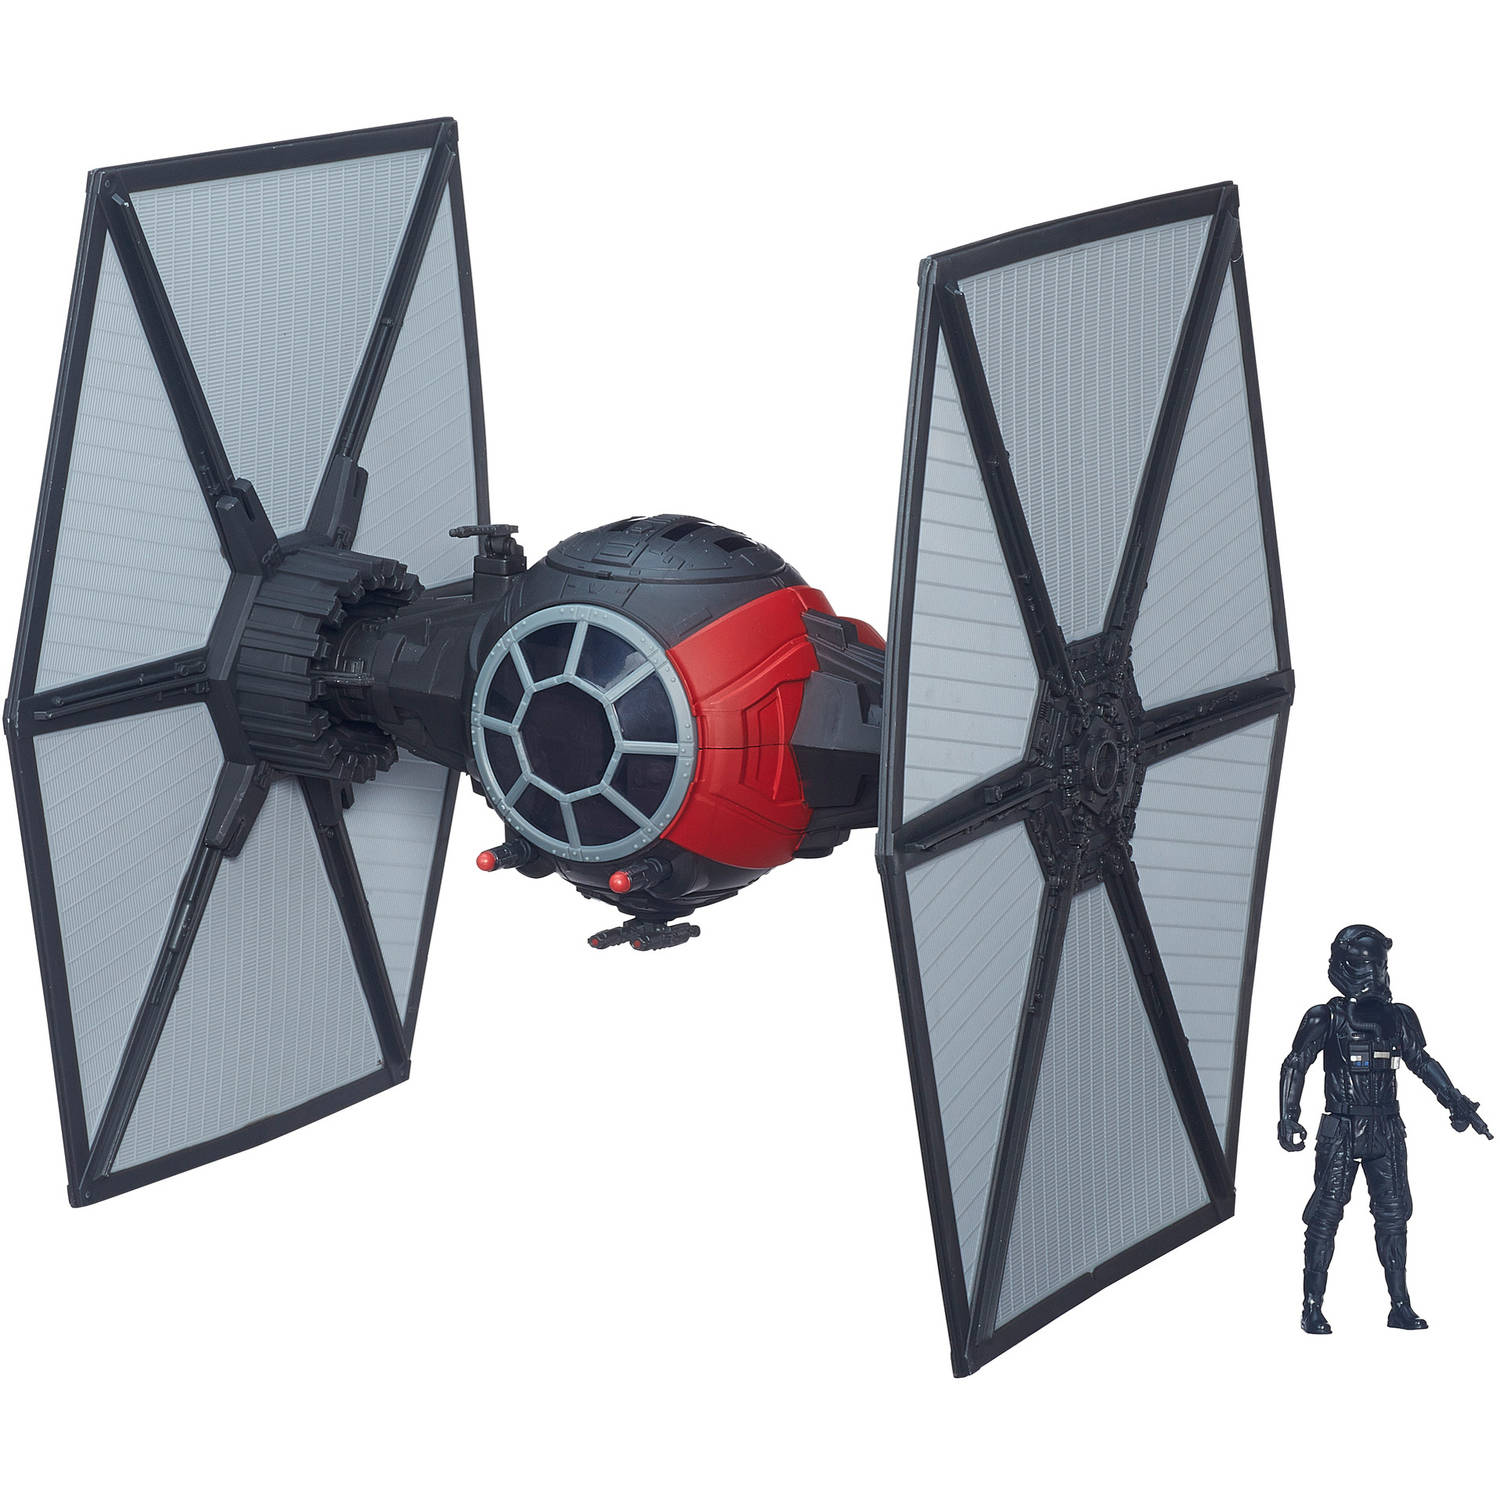 Star Wars The Force Awakens 3.75-inch Vehicle First Order Special Forces TIE Fighter by Hasbro